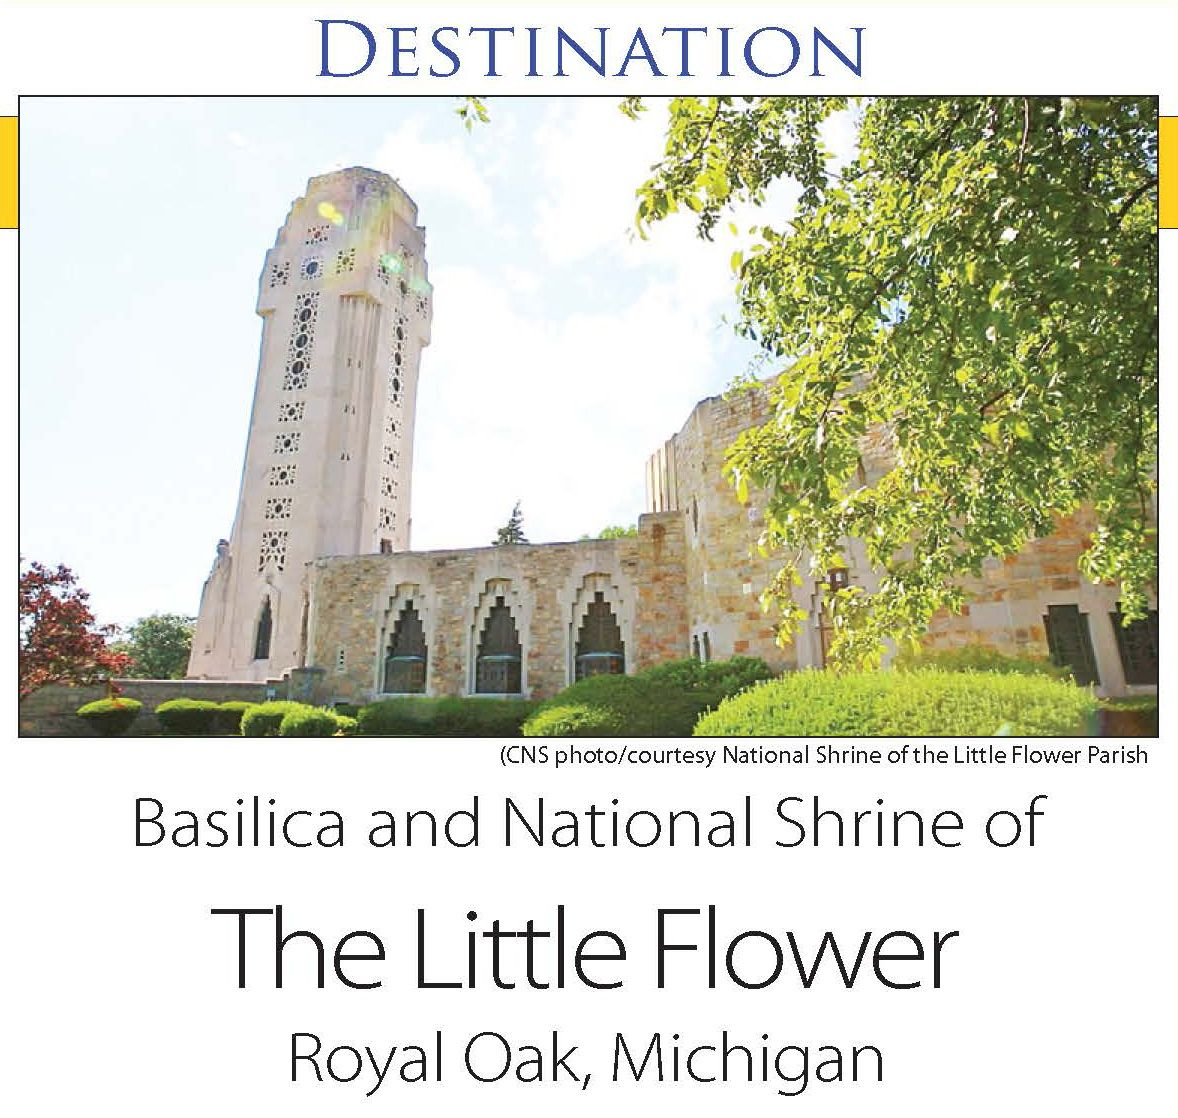 Basilica and National Shrine of The Little Flower Royal